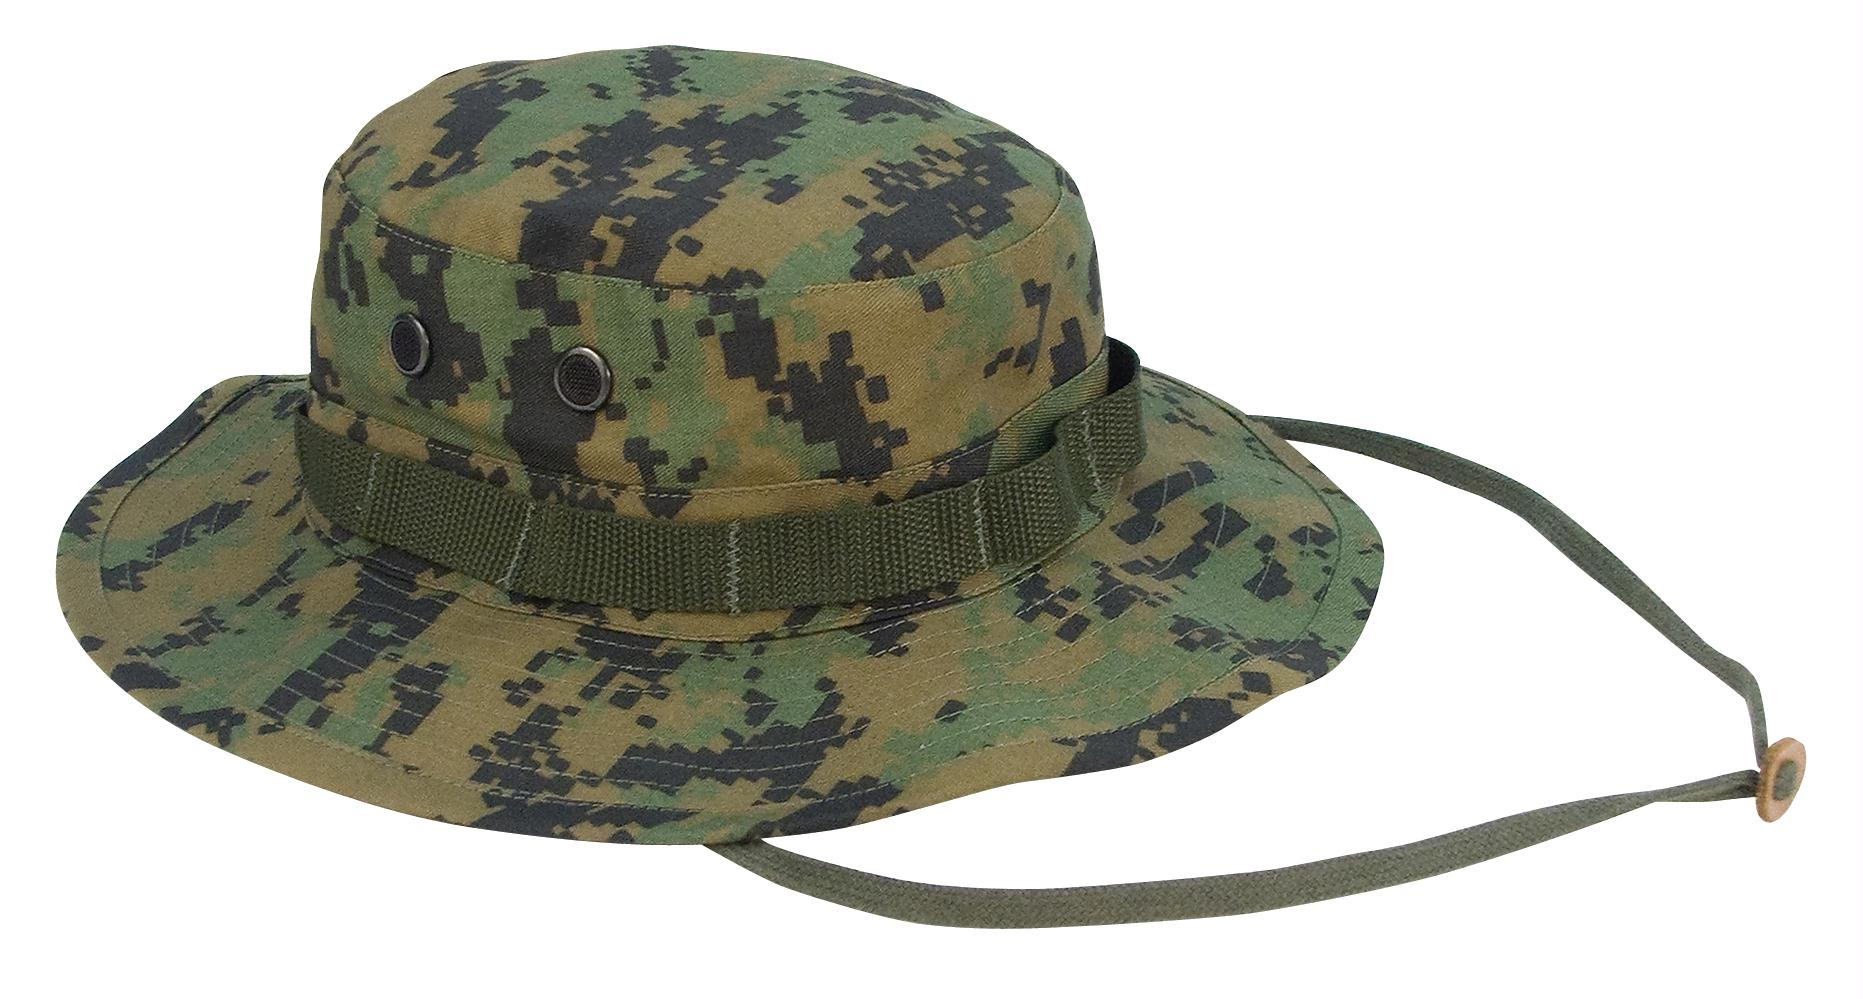 Rothco Digital Camo Boonie Hat - Woodland Digital Camo / 7 3/4